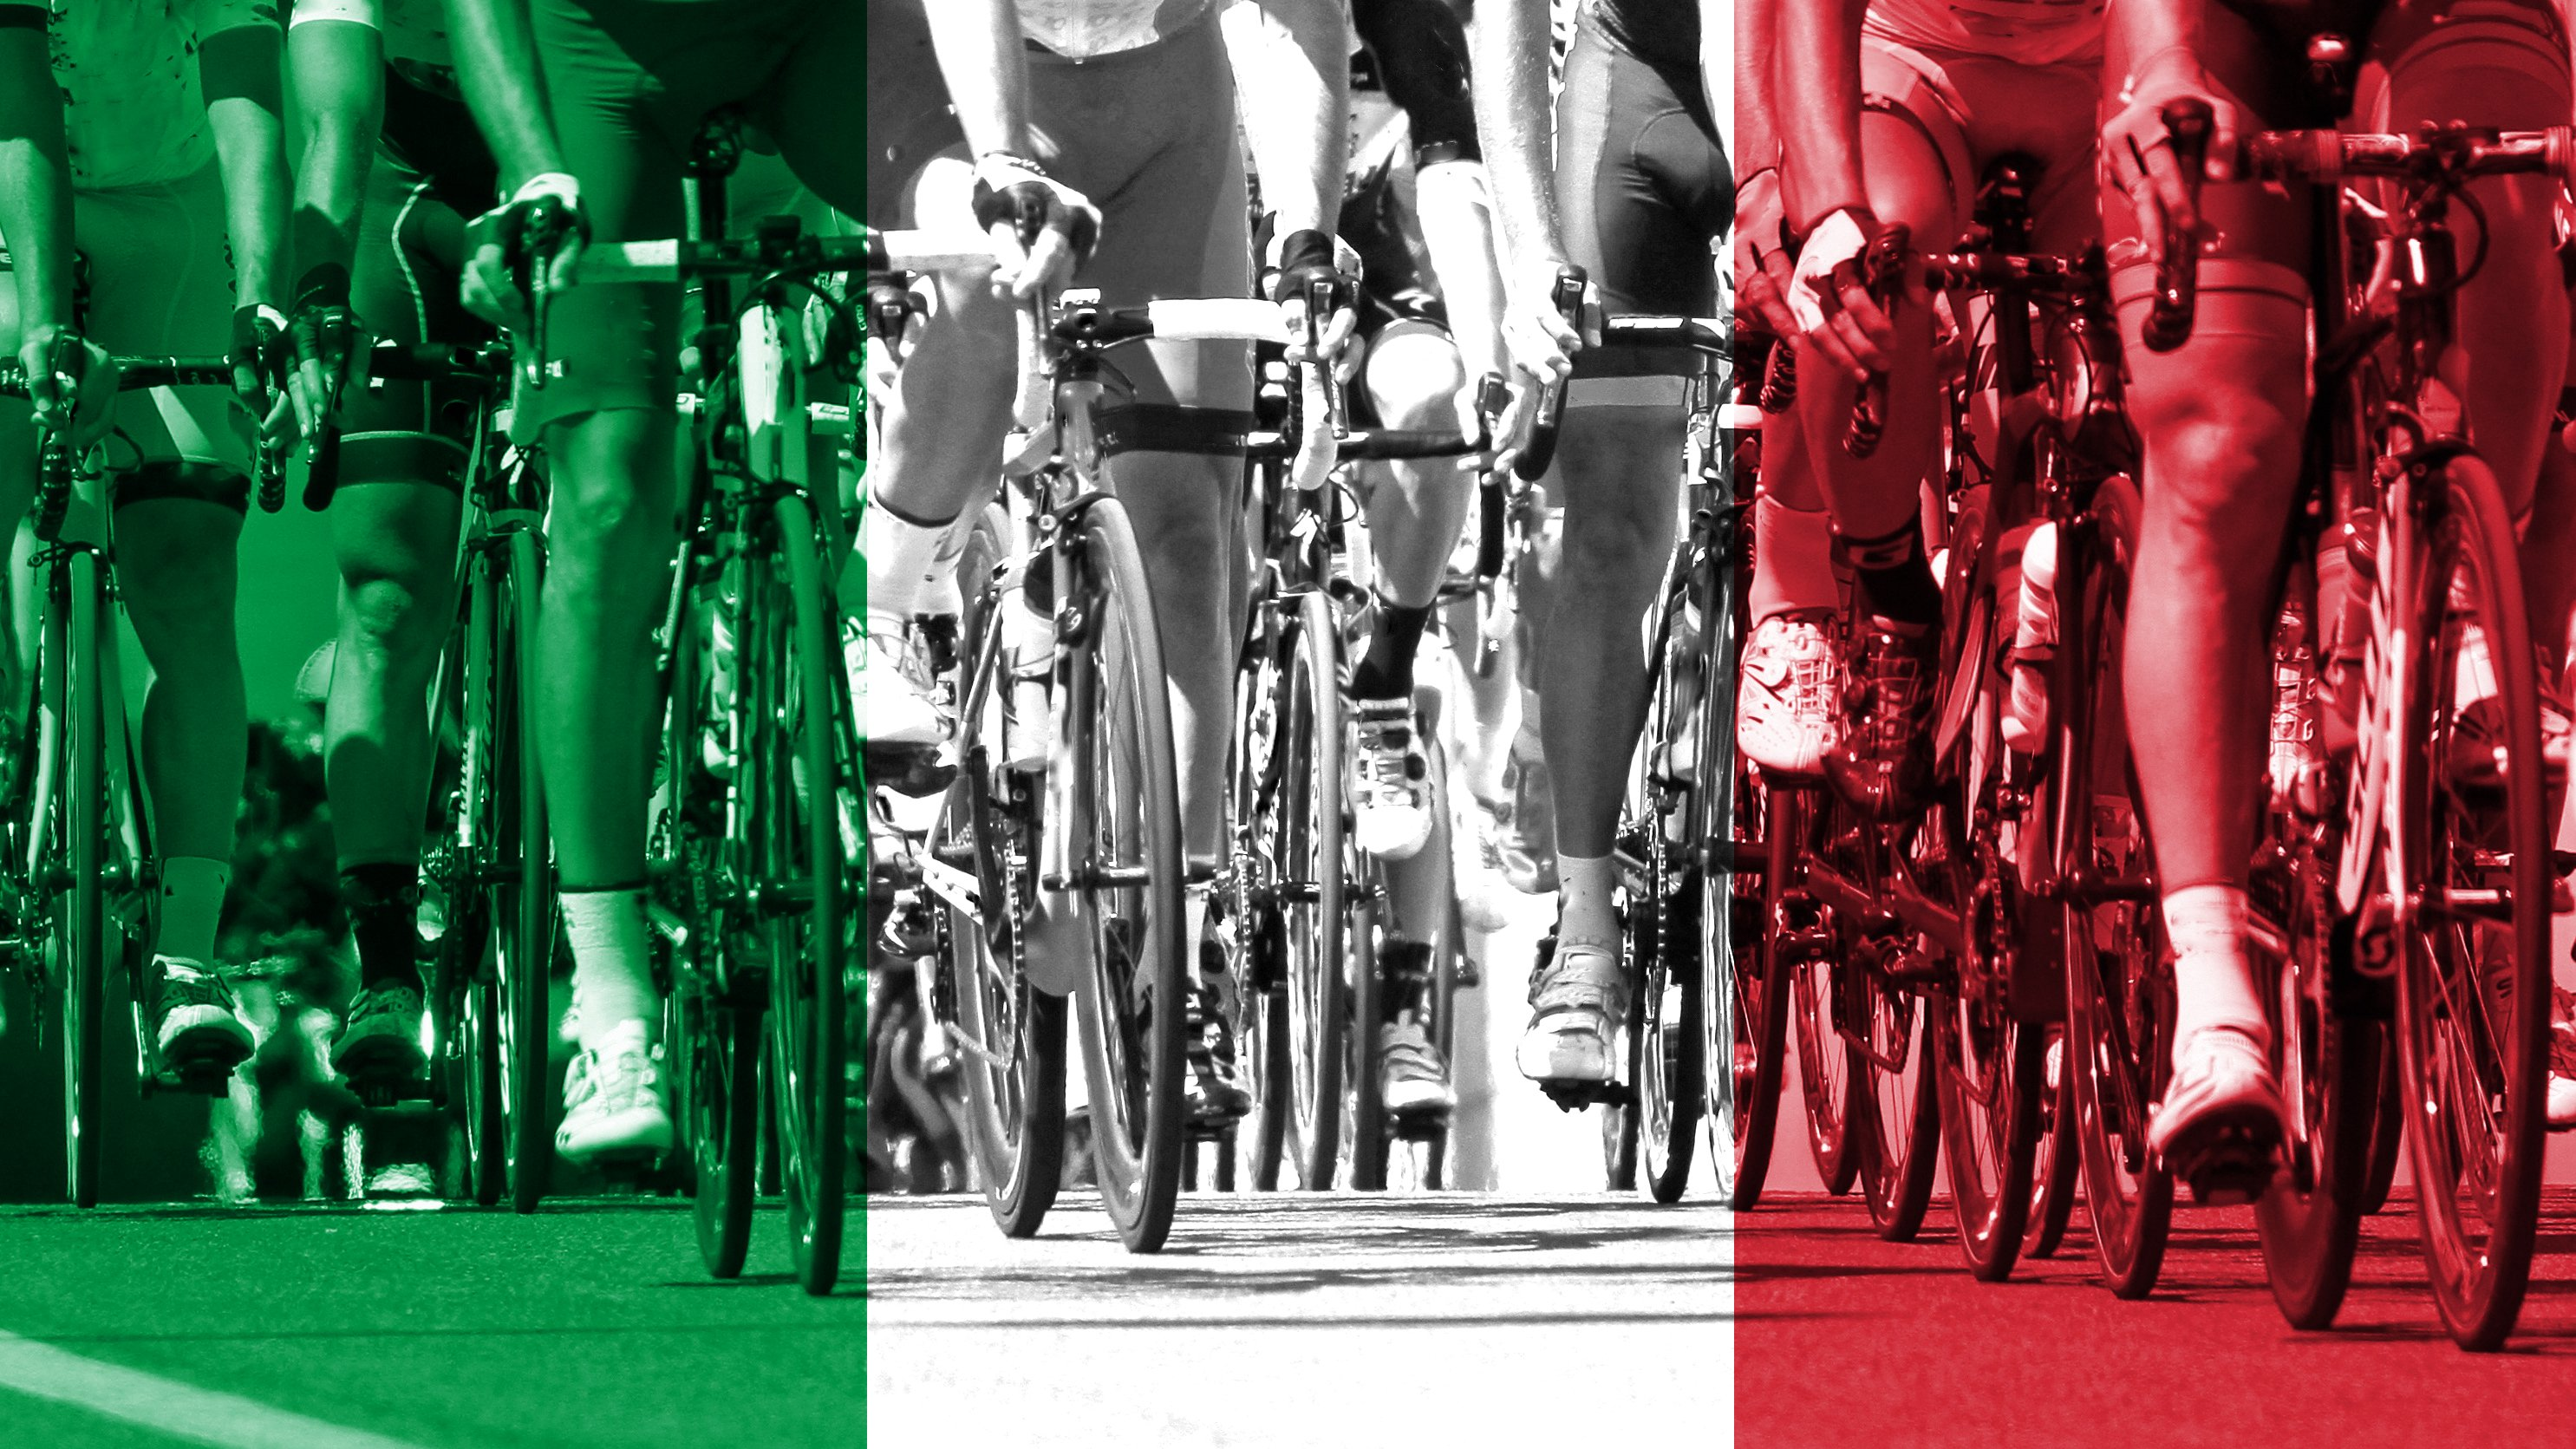 HOW TO WATCH THE GIRO D'ITALIA